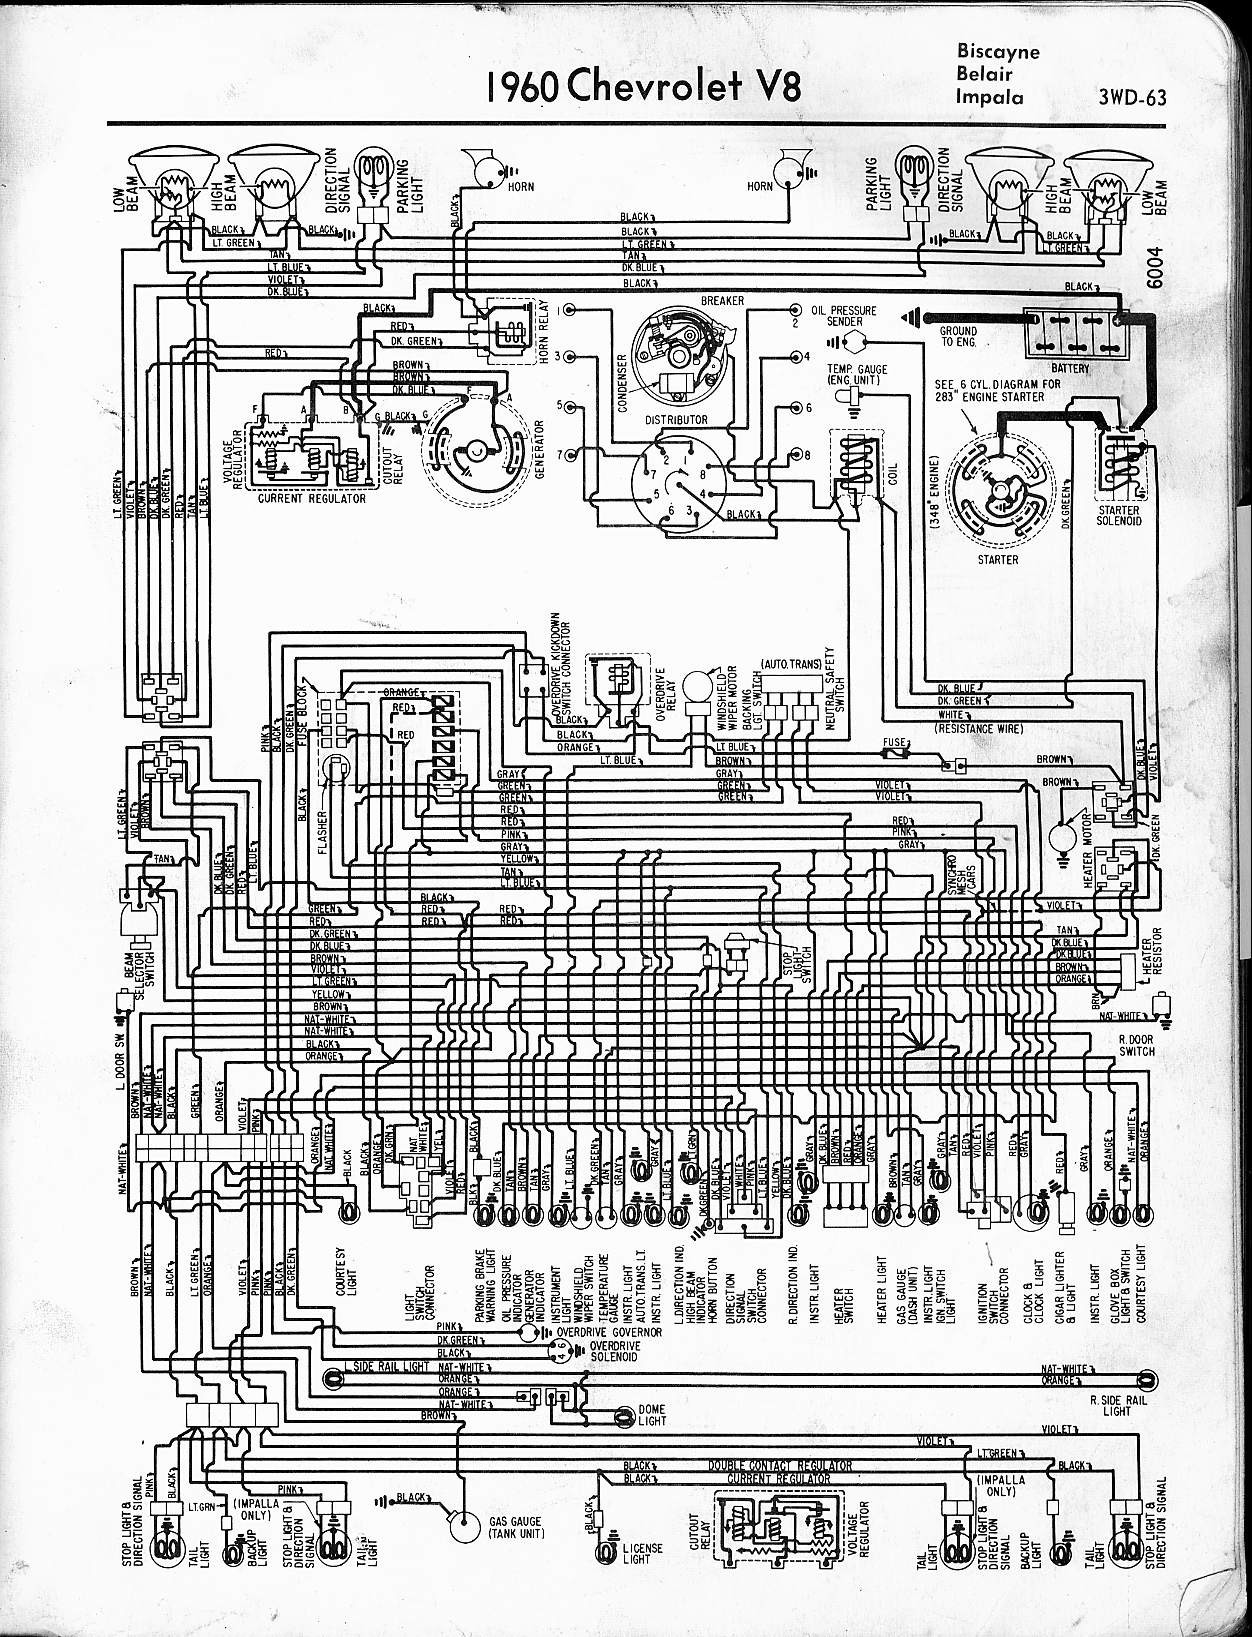 1986 Chevy Truck Wiring Diagram Chevy Silverado Wiring Diagram Simplified Shapes 86 Chevy Truck Of 1986 Chevy Truck Wiring Diagram